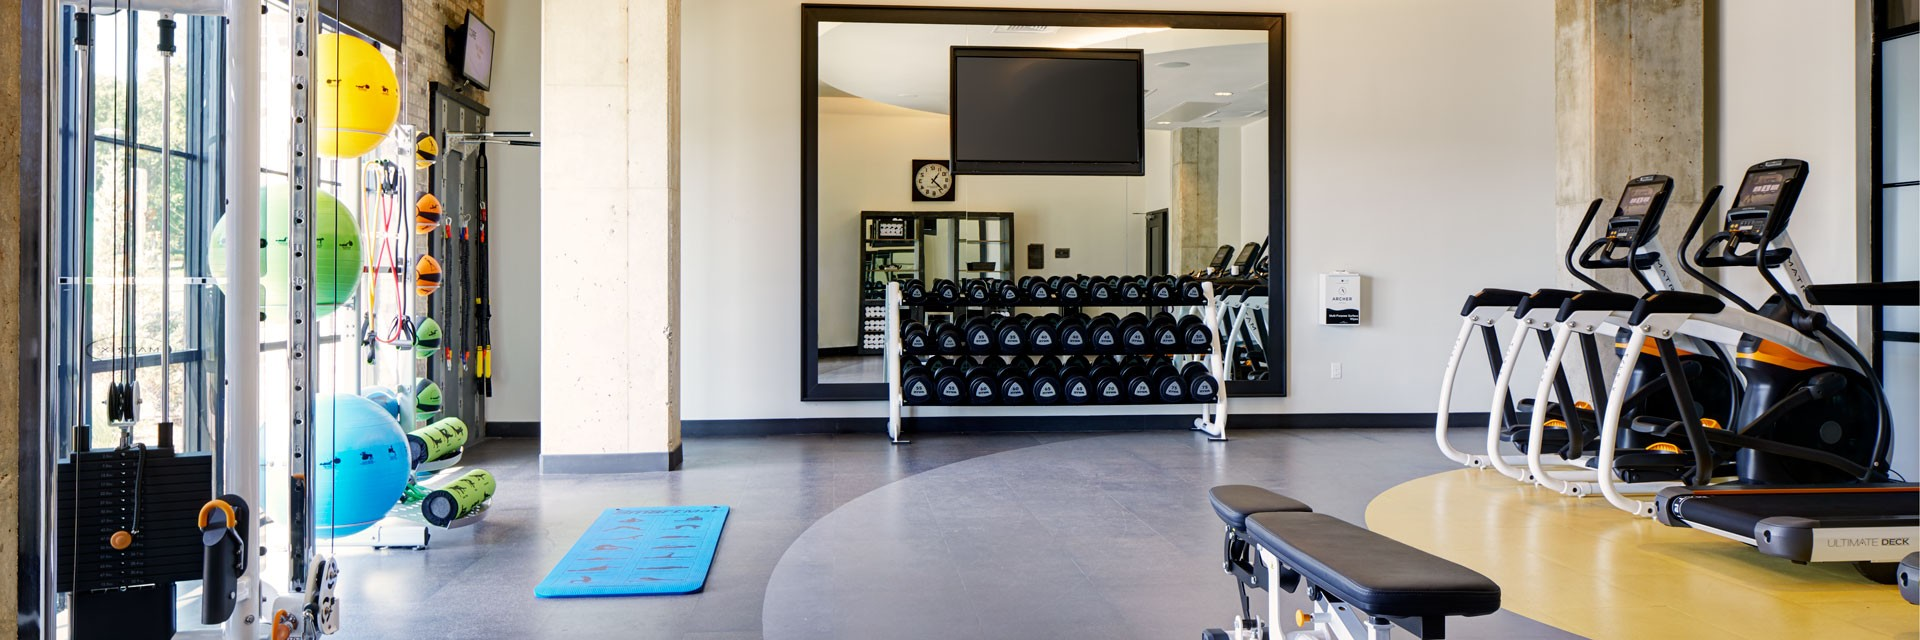 The fitness studio at Archer Hotel Florham Park, with free weights, treadmills and other exercise equipment